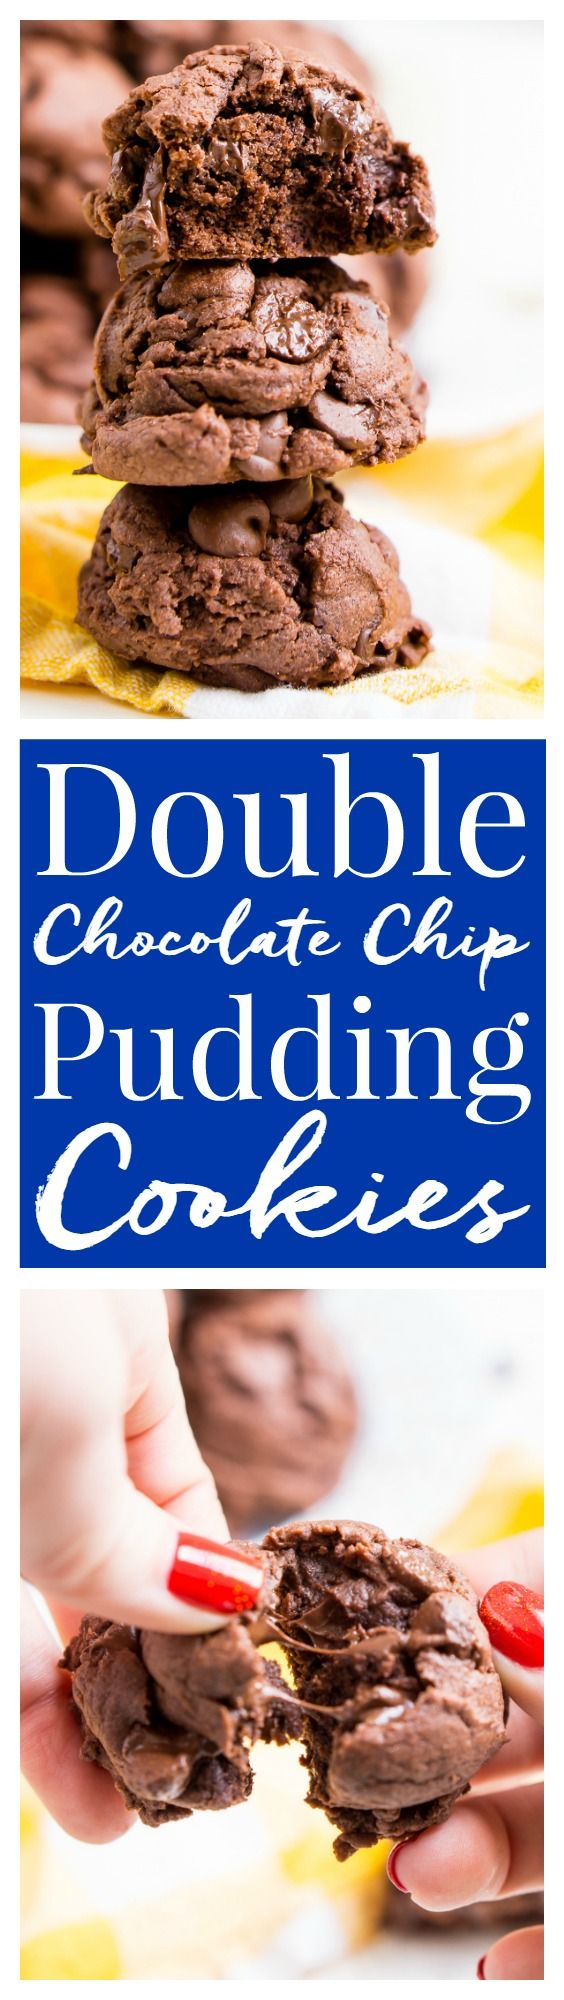 These Double Chocolate Chip Pudding Cookies have a slightly crisp outer shell and are chewy and gooey on the inside almost like a brownie. Pull the first batch out of the oven in 30 minutes! via @sugarandsoulco